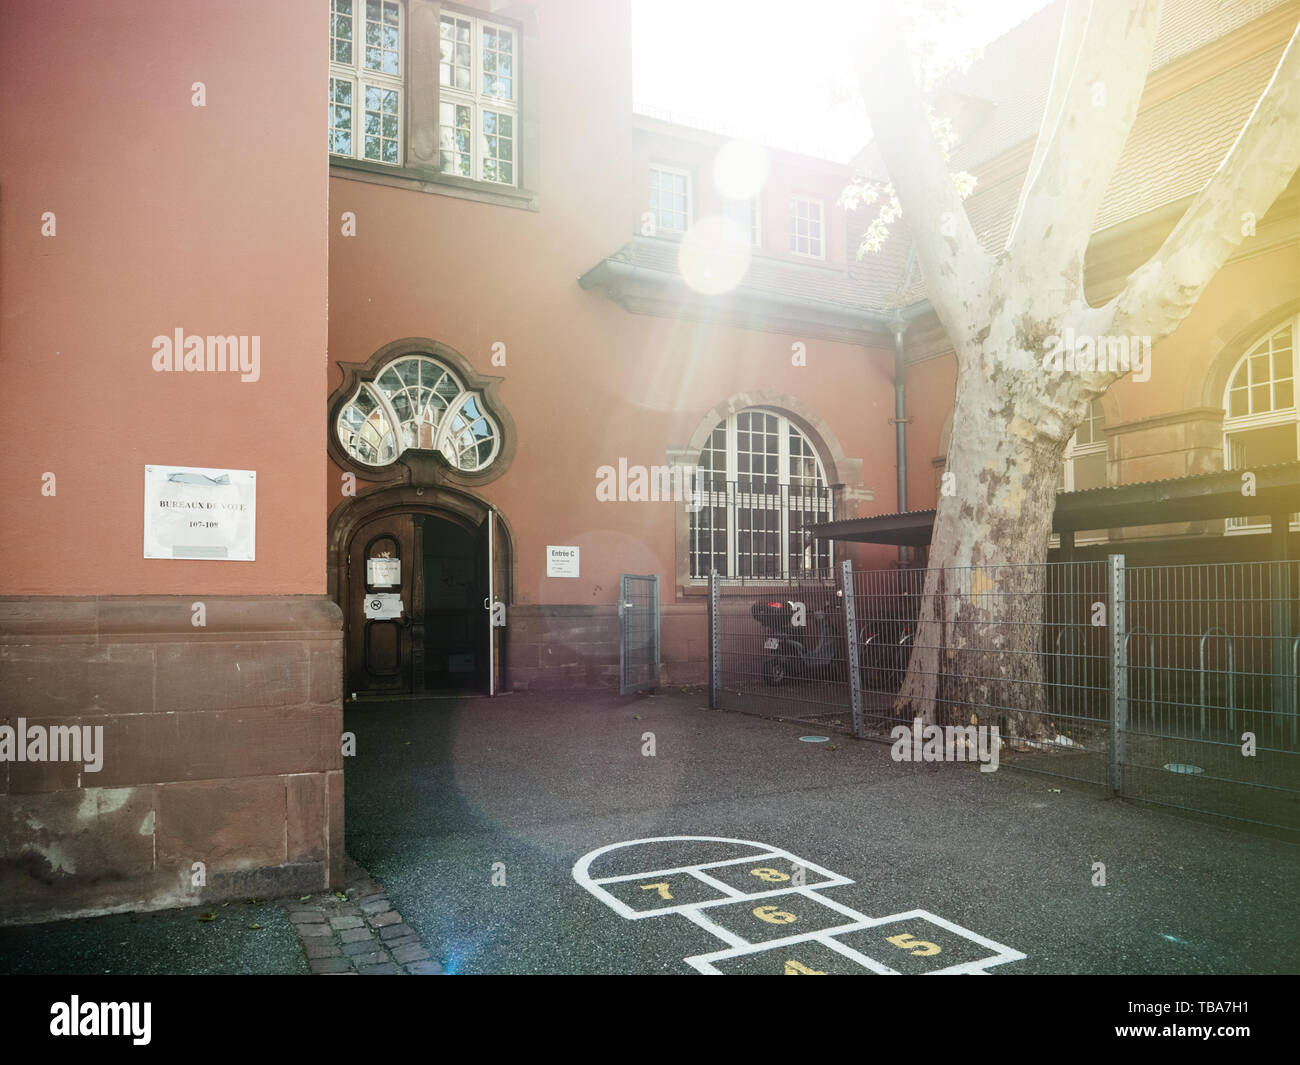 Strasbourg, France - May 26, 2019: Empty entrance to polling station bureaux de vote in France on the 2019 European Parliament election day - Stock Image